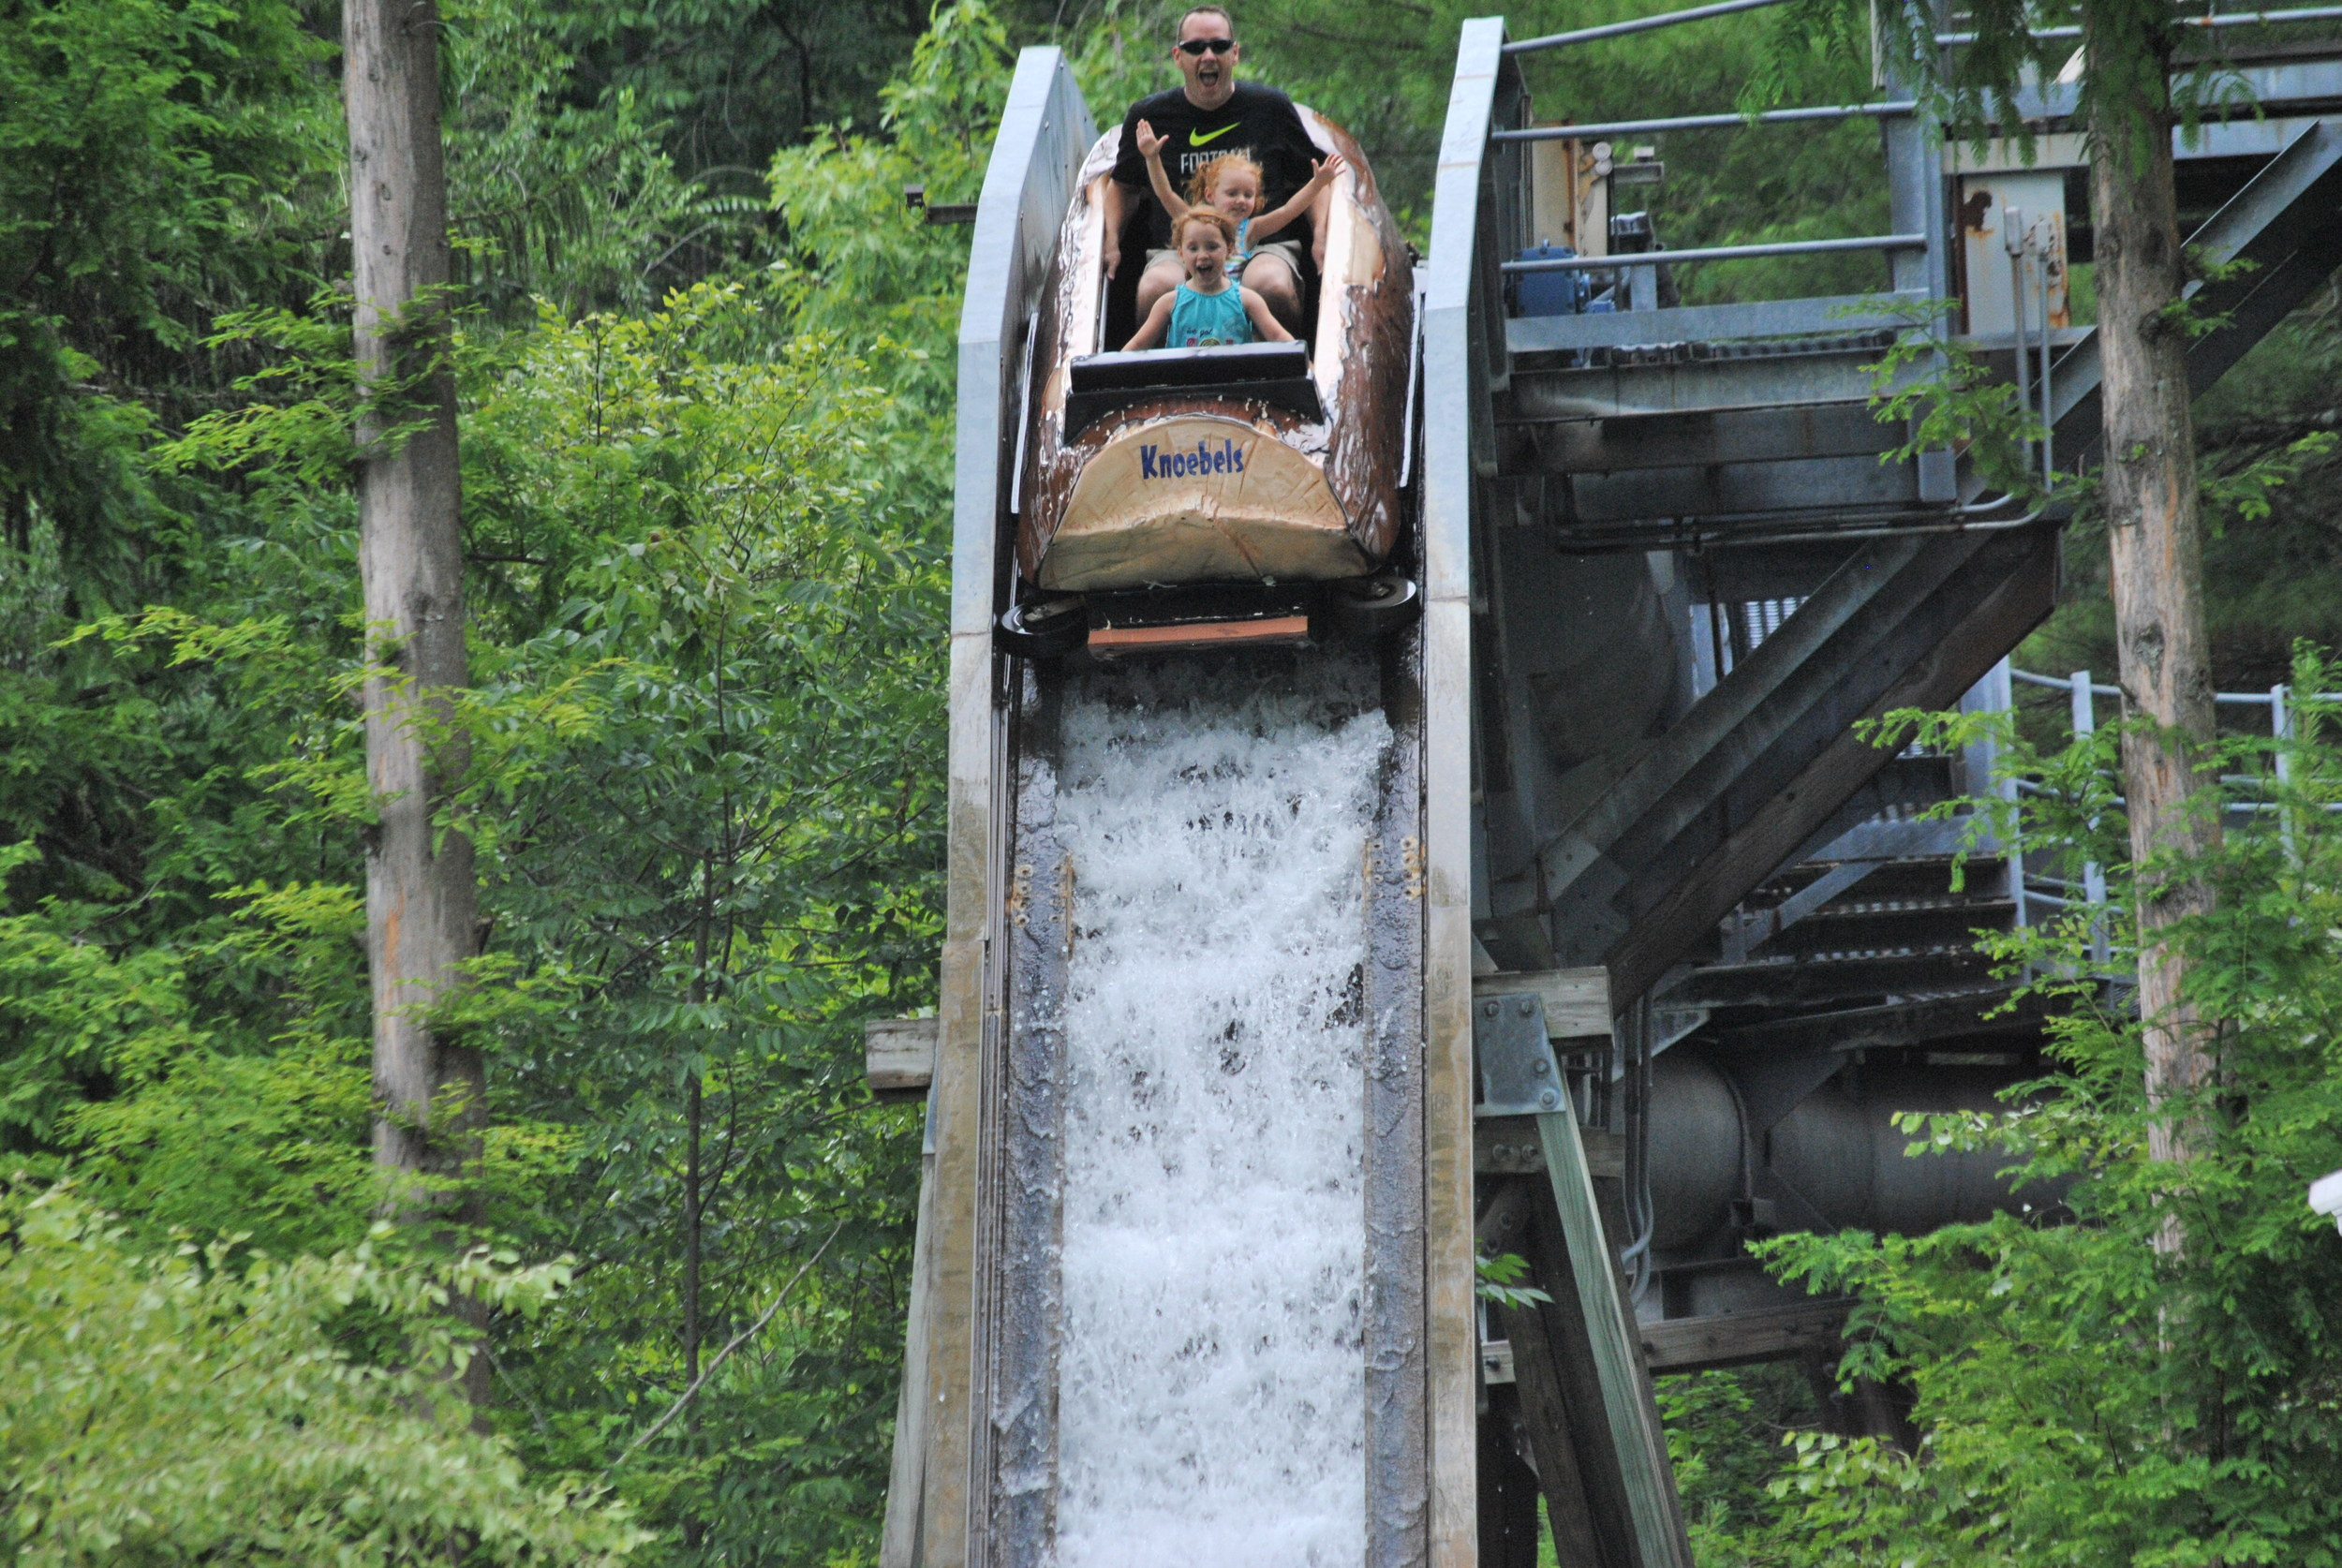 Tom, husband of Katie Bonner (Purchasing), and their daughters Quinn and Kailin enjoying their first ride on the Log Flume at Knoebels Grove.